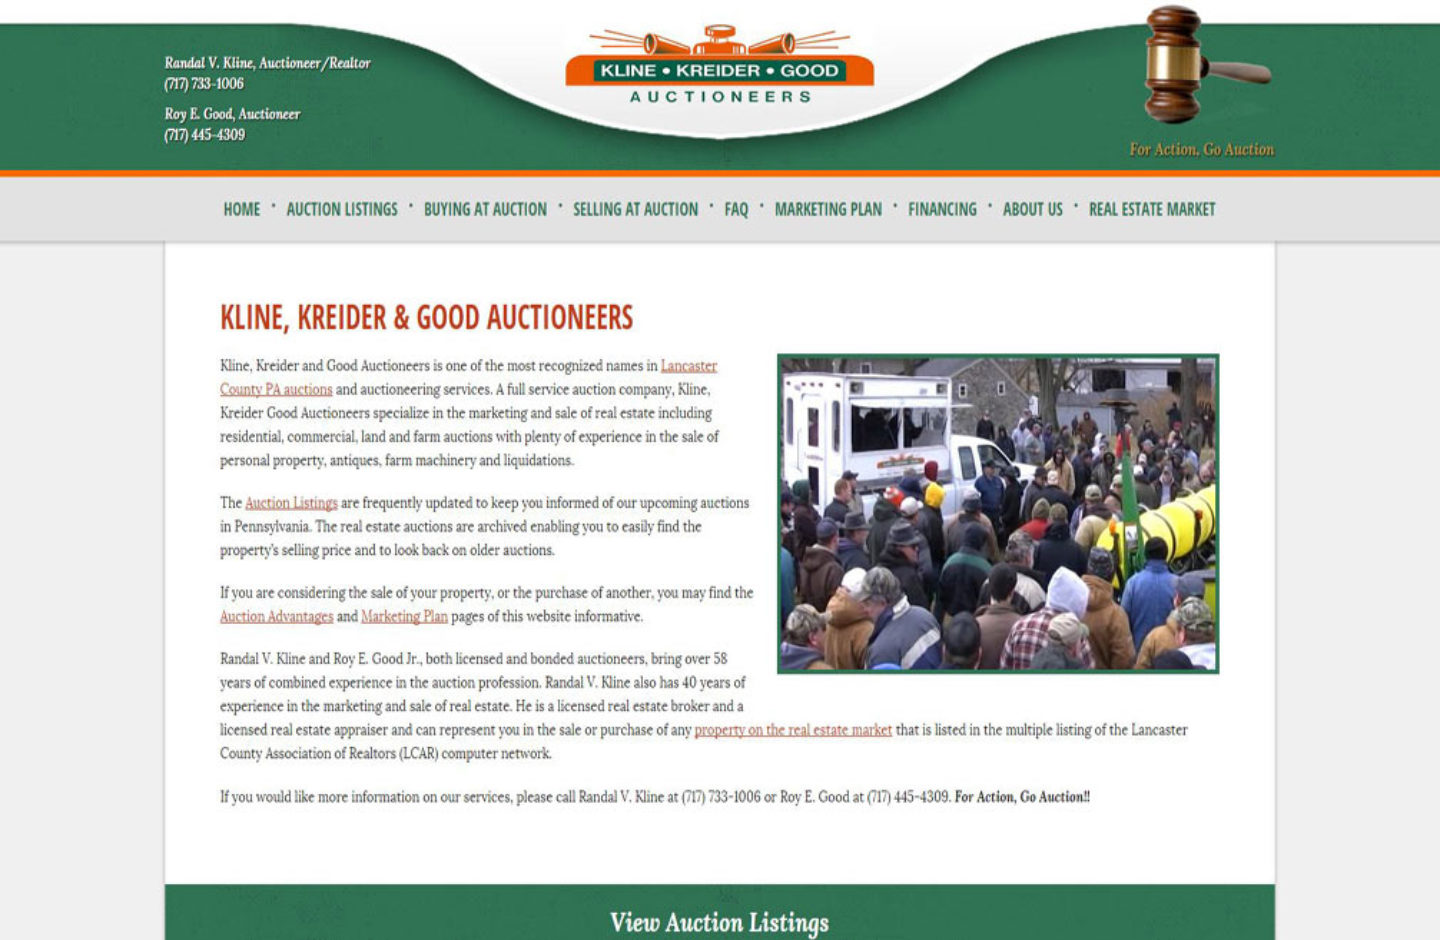 Kline Kreider Good Auctioneers